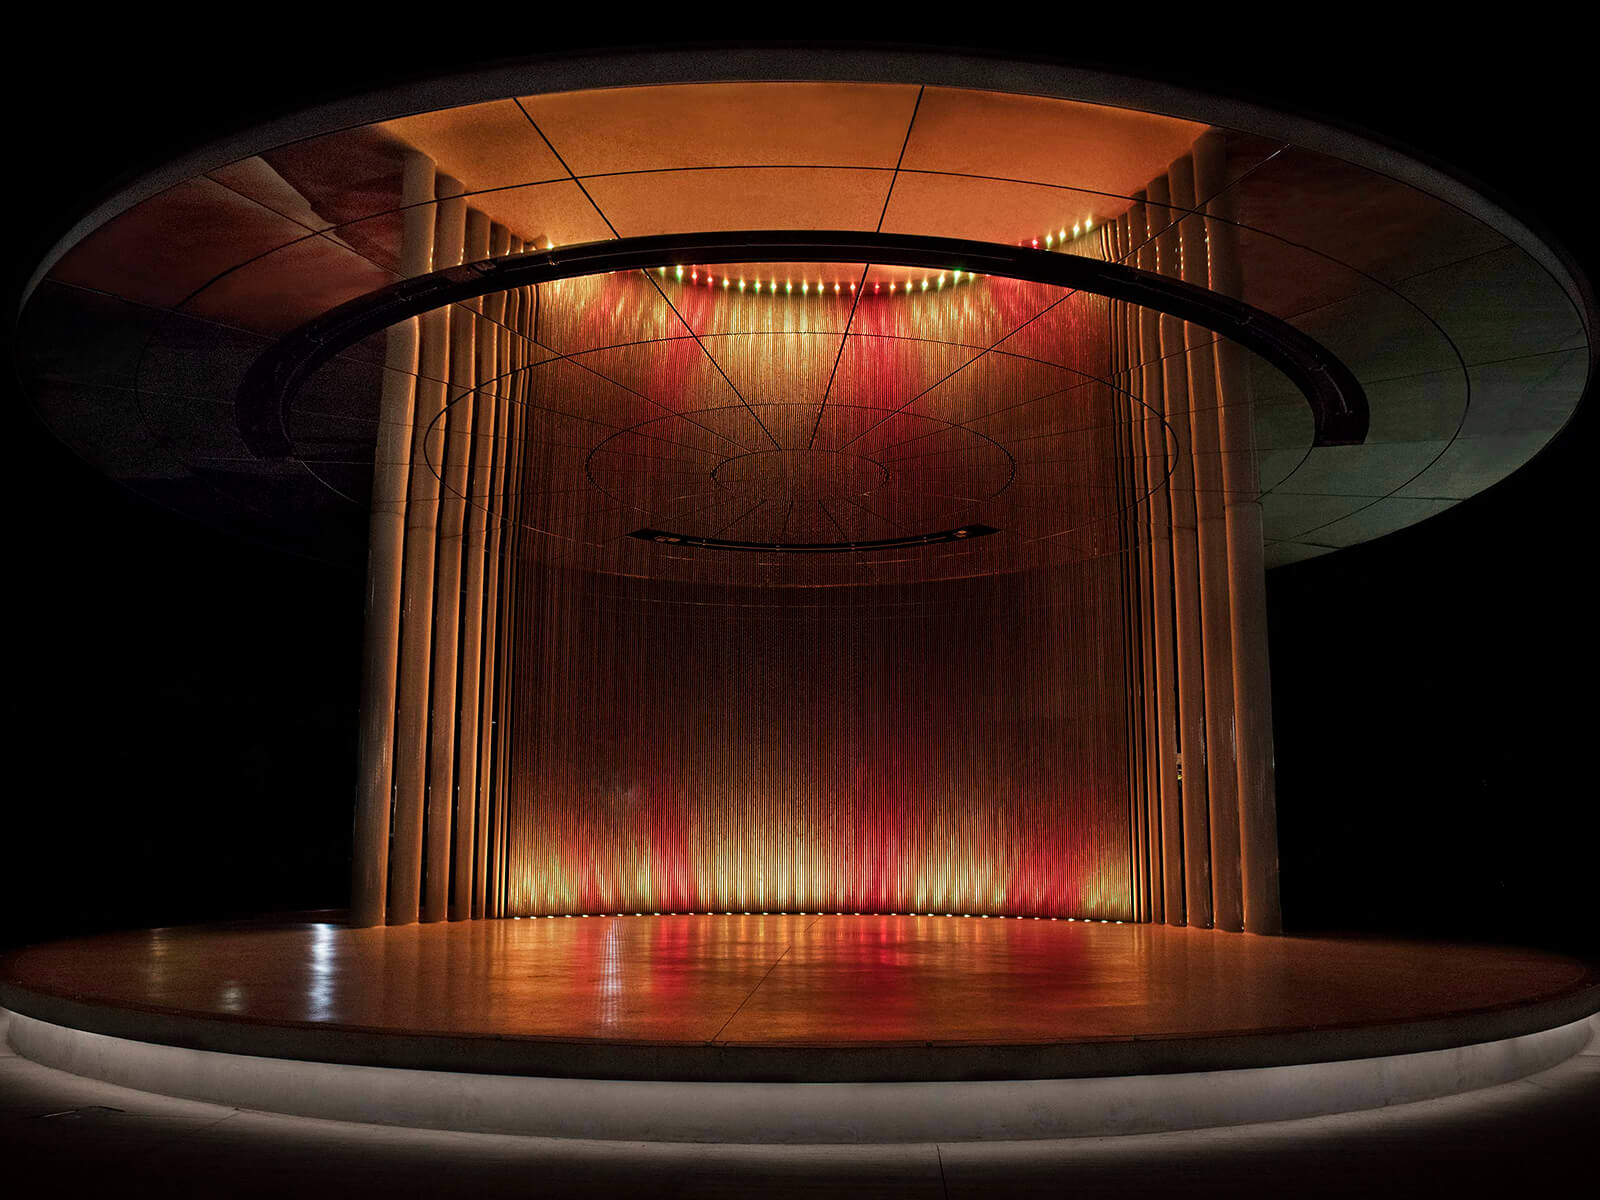 A circular structure with 380 etched metal rods lit in shades of red and yellow at night